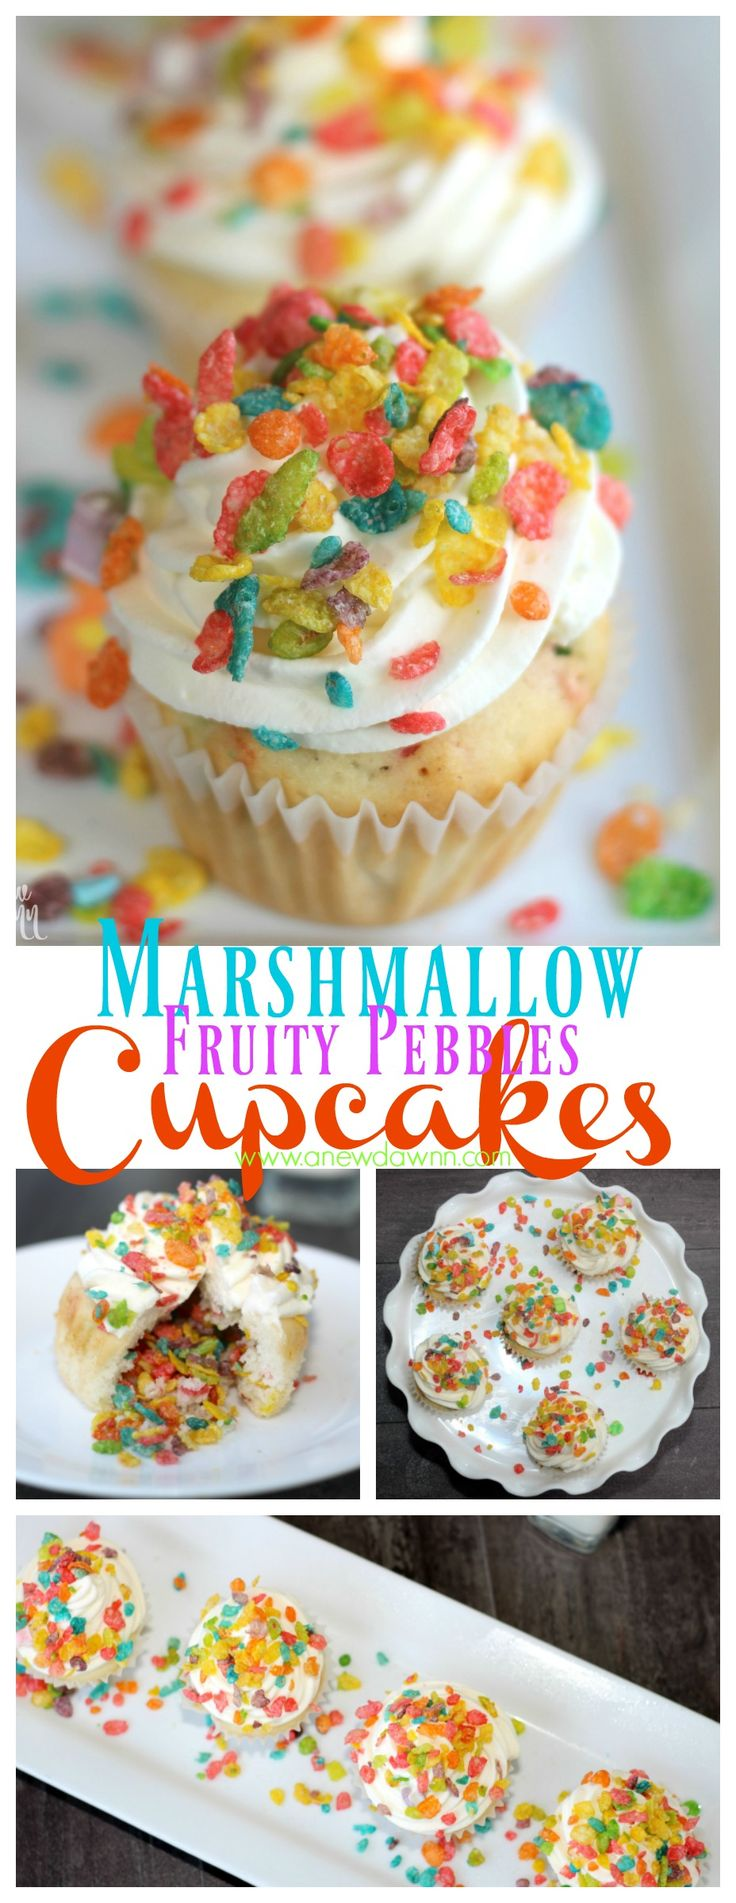 Enjoy #CerealAnytime with these delicious Marshmallow Fruity Pebble Cupcakes #ad